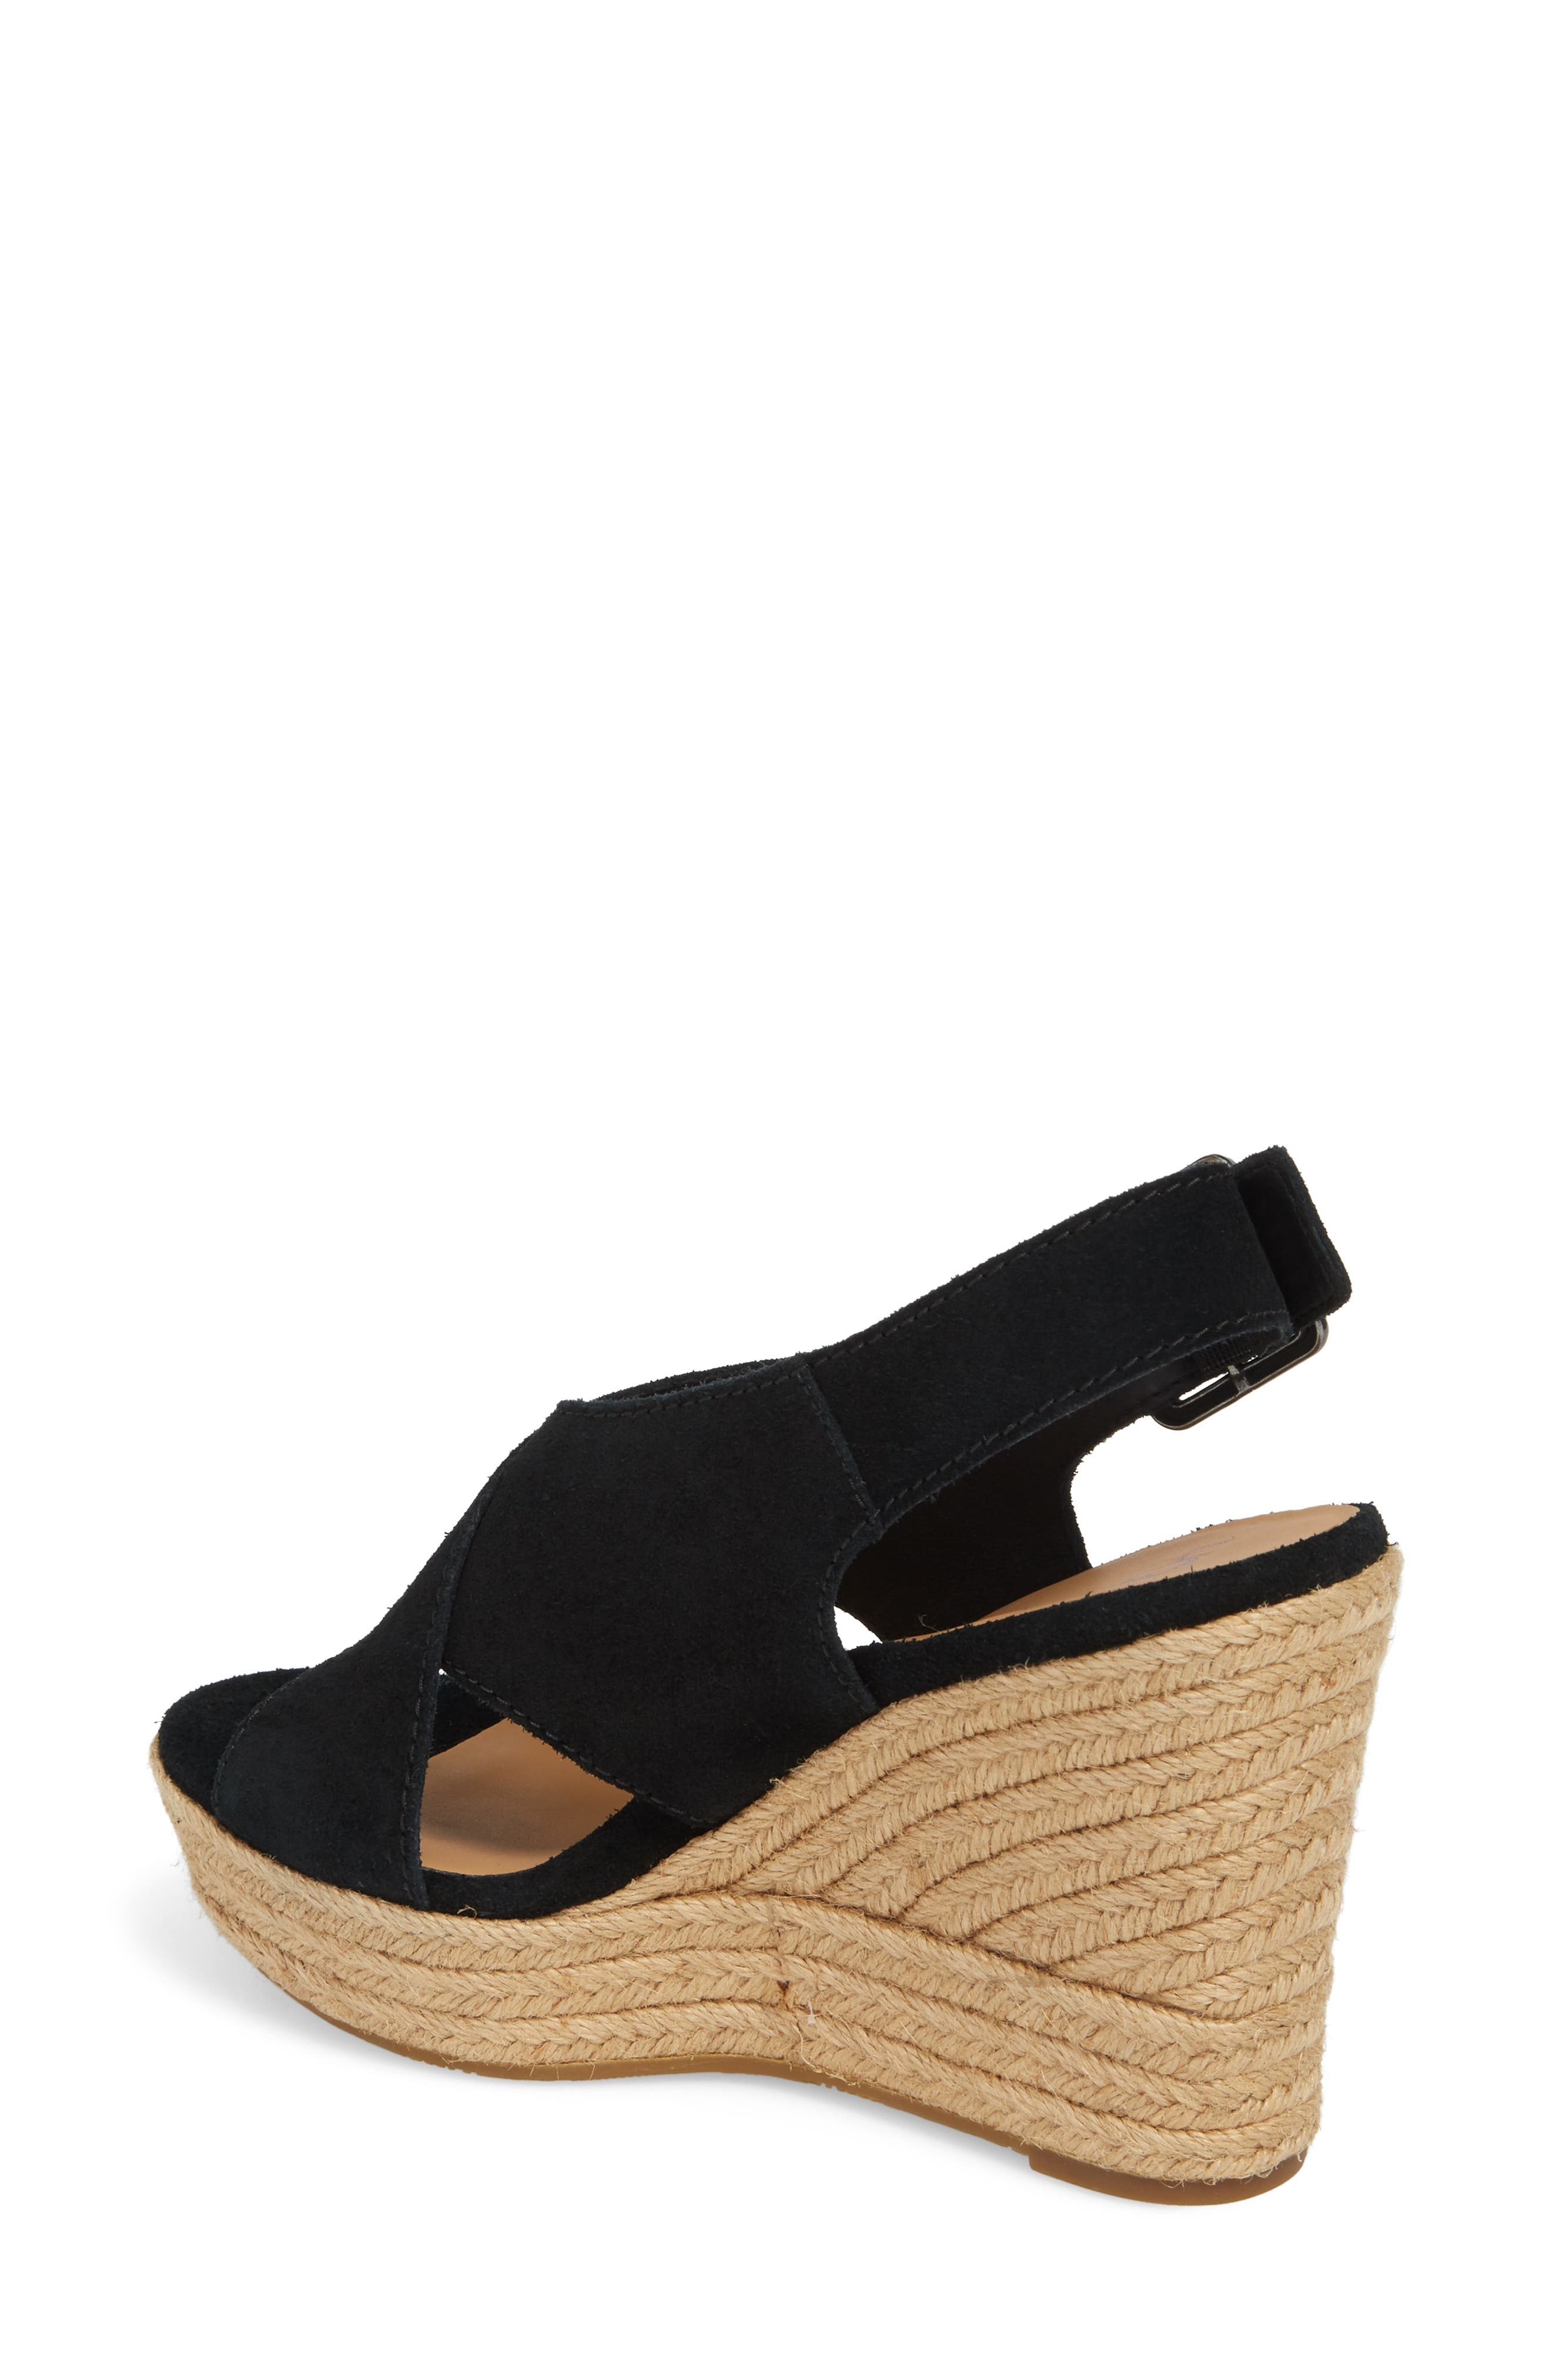 Harlow Platform Wedge Sandal,                             Alternate thumbnail 2, color,                             001